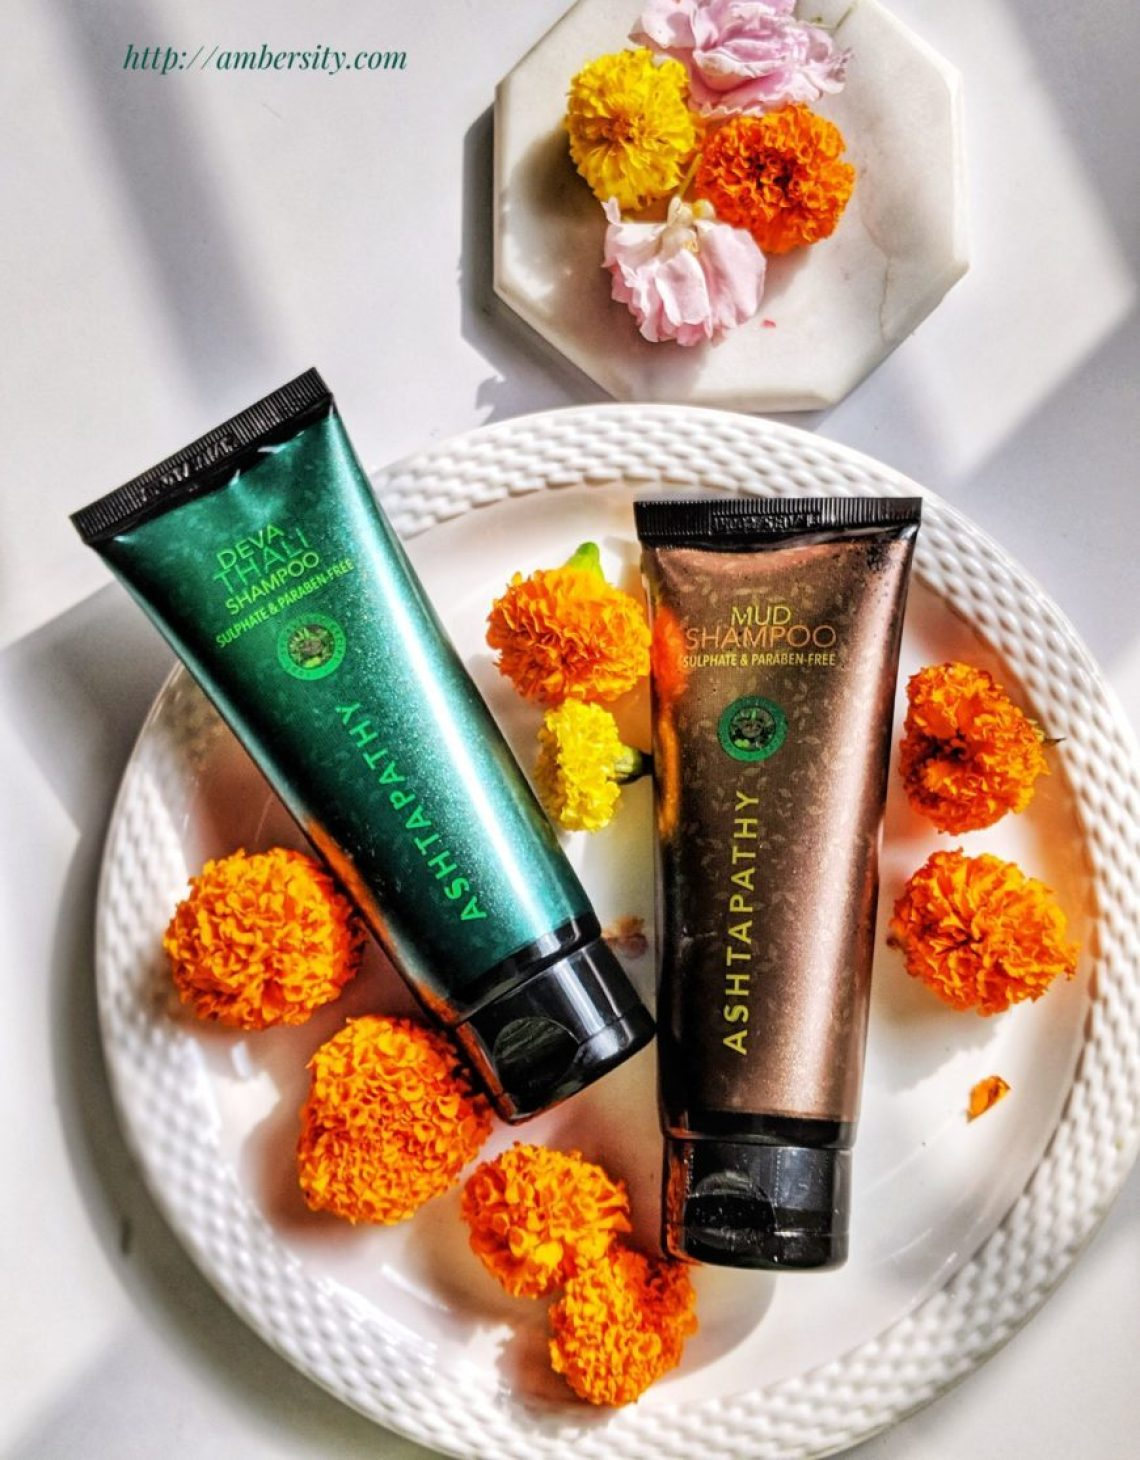 The Ayurvedic Way to Healthy Hair — Shesha Beauty Ashtapathy Shampoos: My Experience and Review